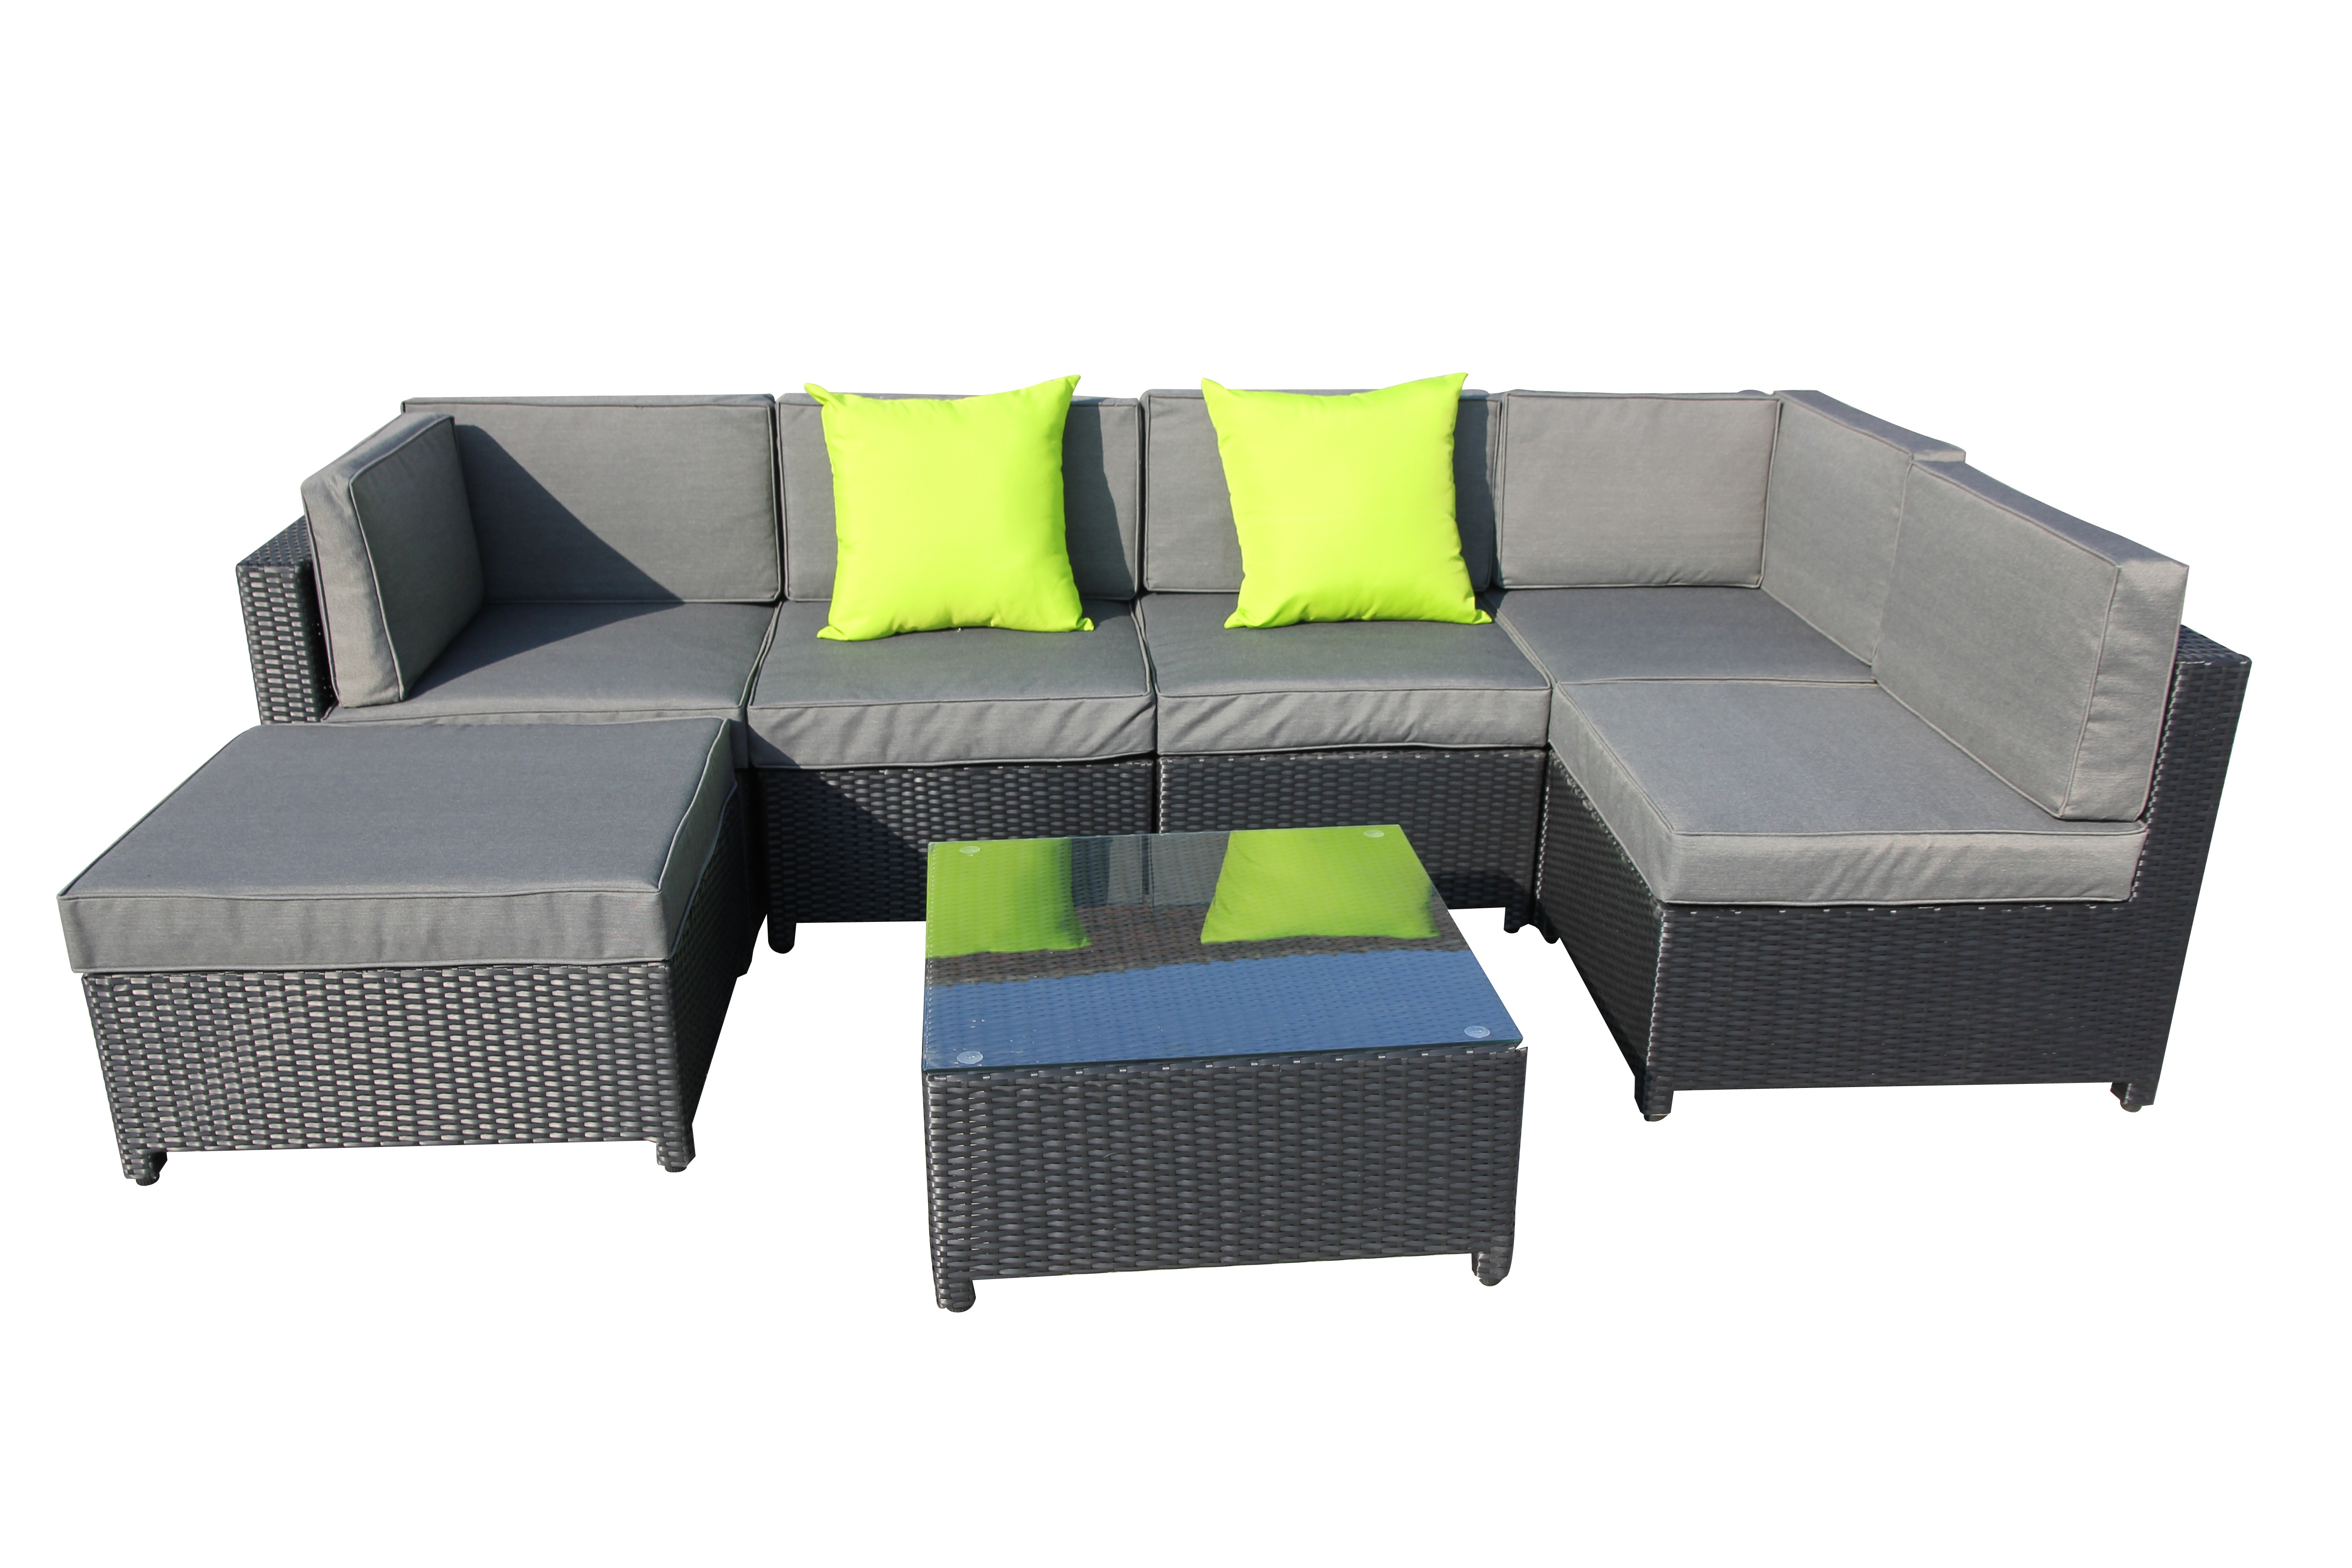 kuta wicker rattan sofa lounge indoor outdoor patio furniture 2 colours 7pc set ebay. Black Bedroom Furniture Sets. Home Design Ideas